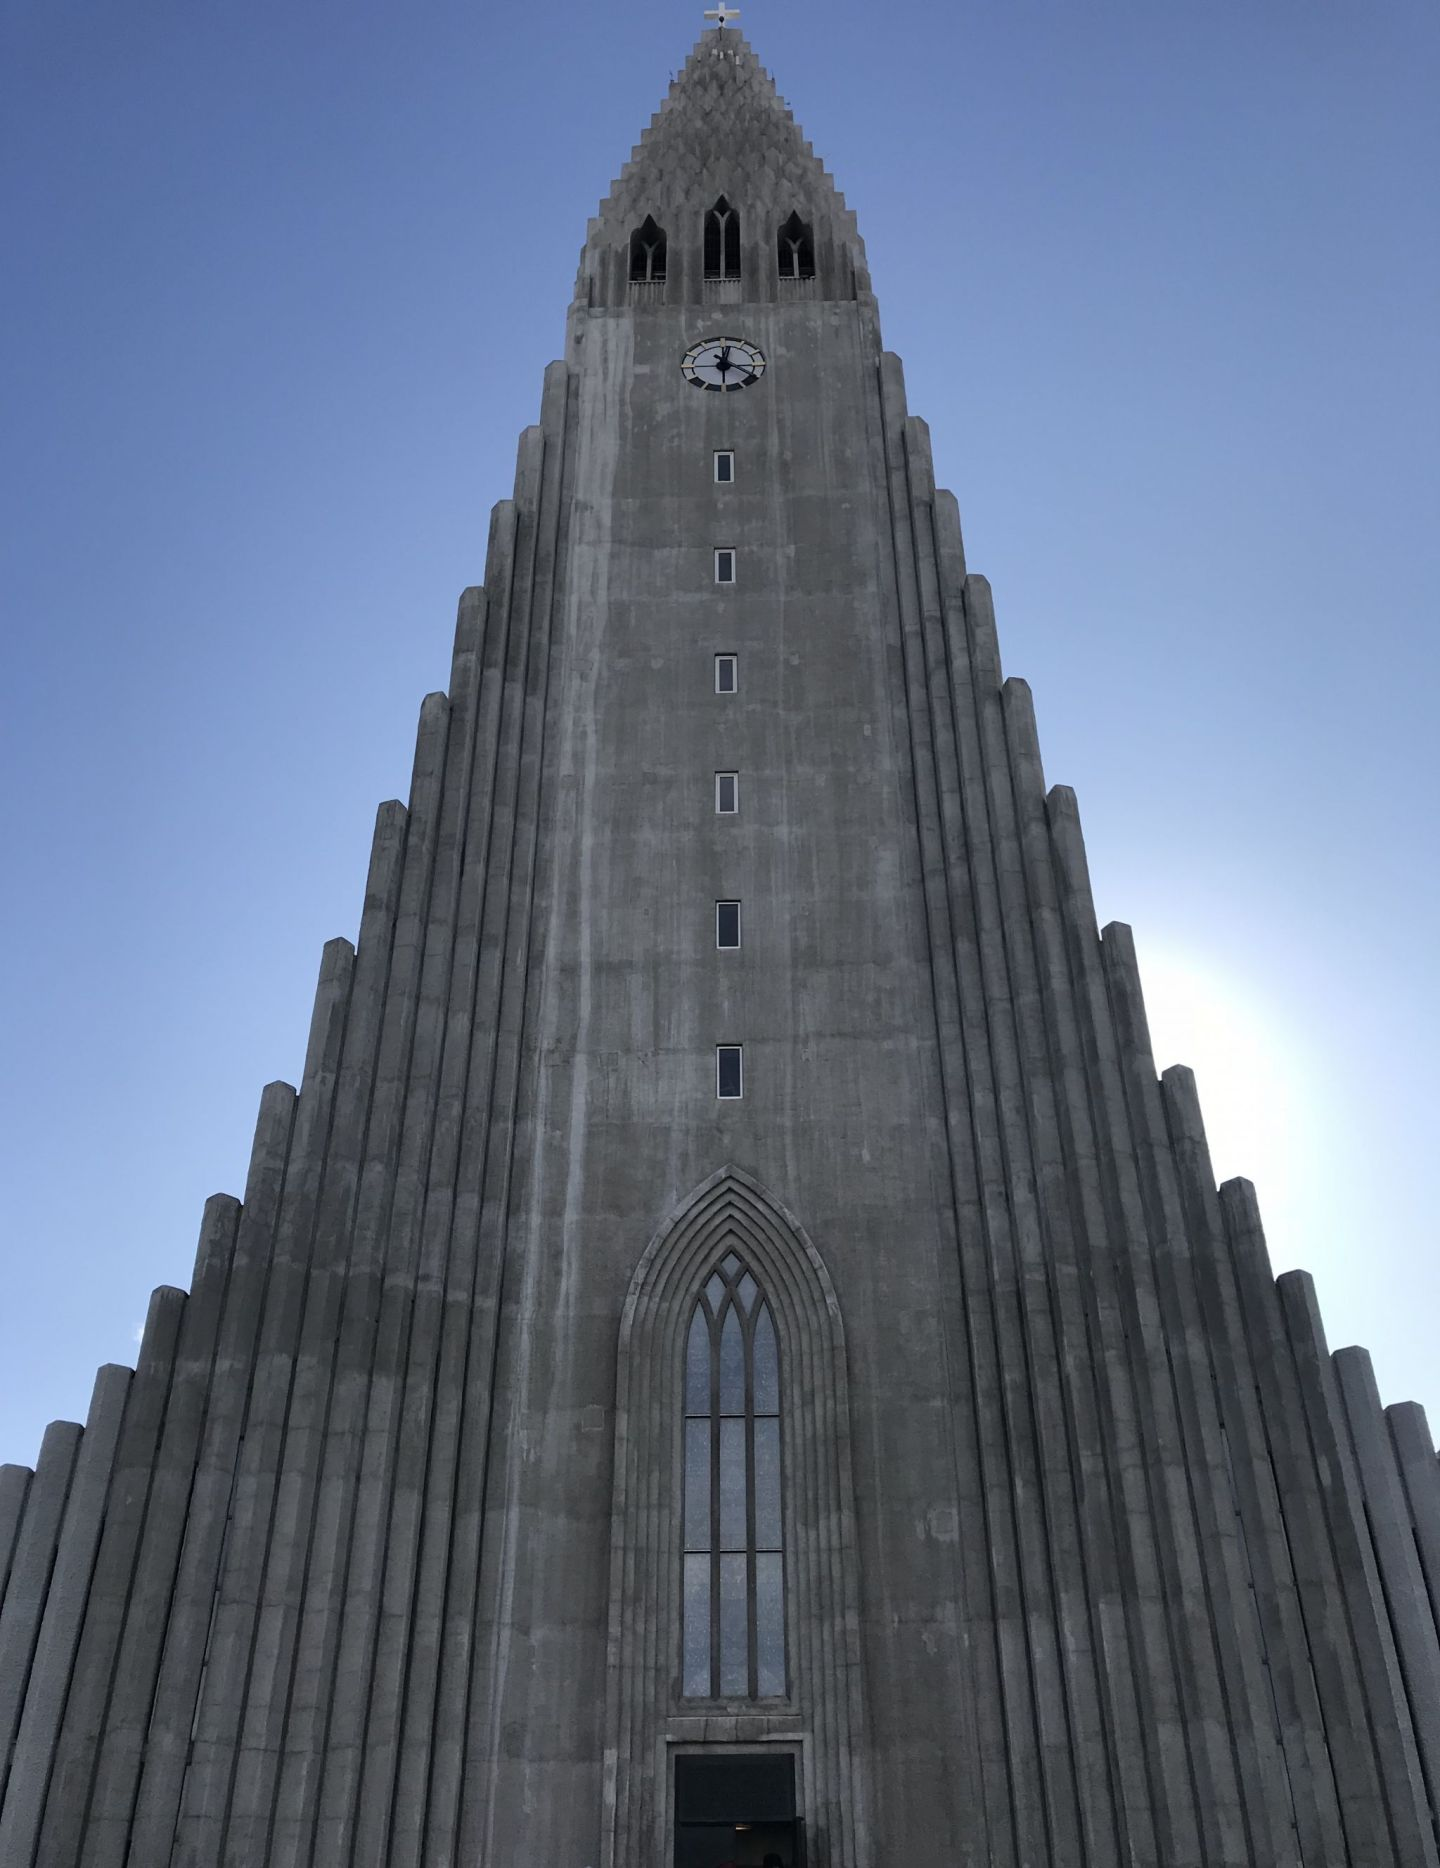 Iceland Hallsgrimskirkja church in Reykjavik city